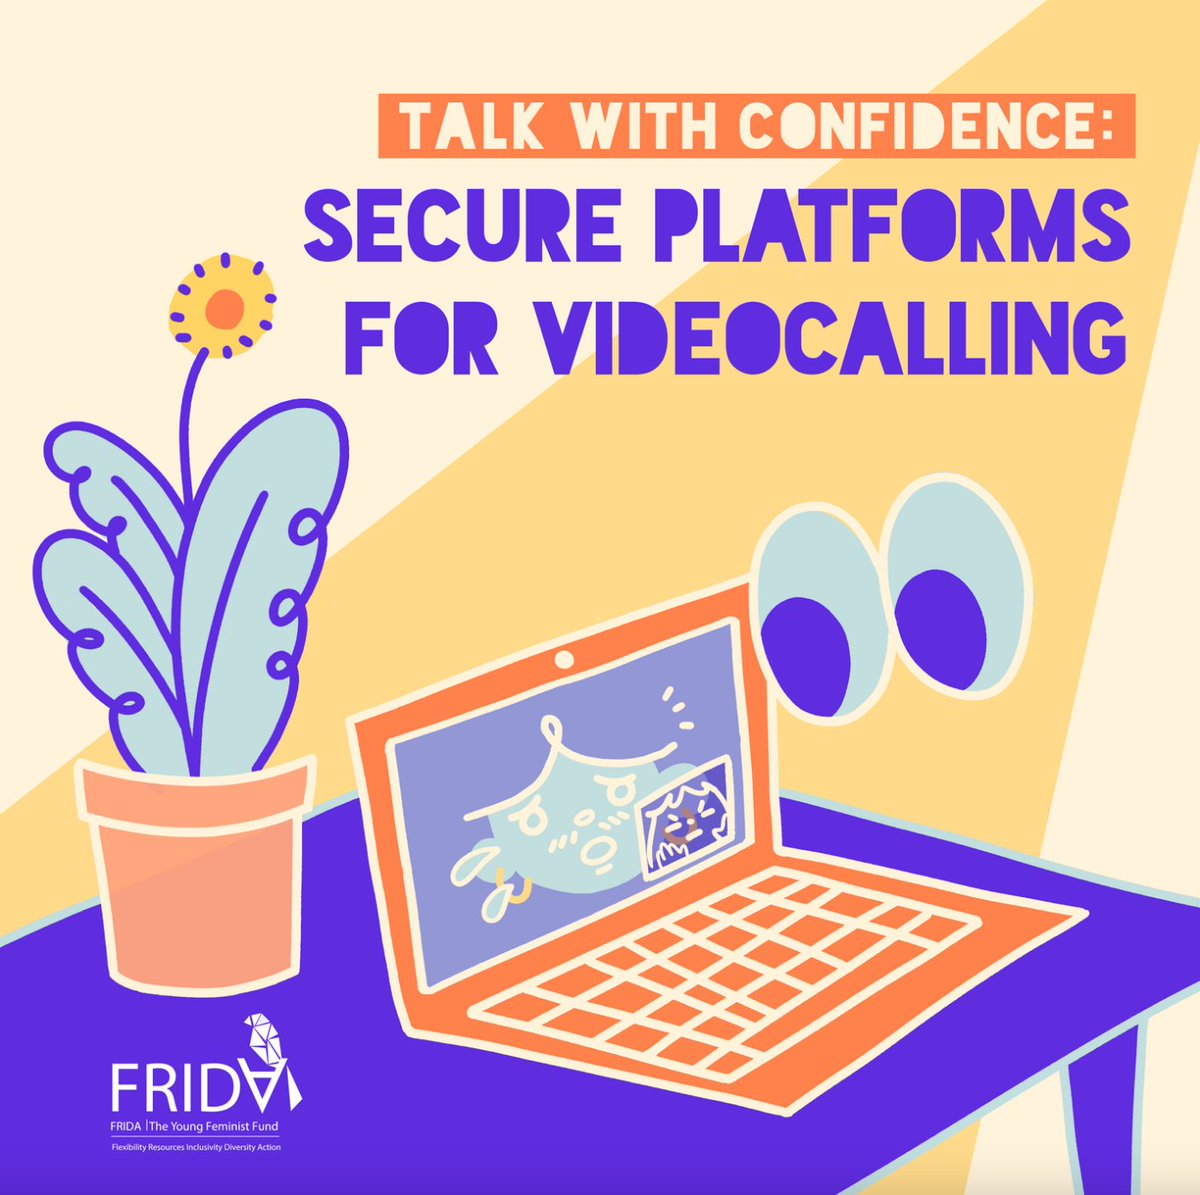 As we continue organize, love a& live online, we are mindful of the ways that online space & safety are in constant flux. Our latest Digital security resource focuses on ways to make video conferencing safer for you & your community. #takebackthetech >>